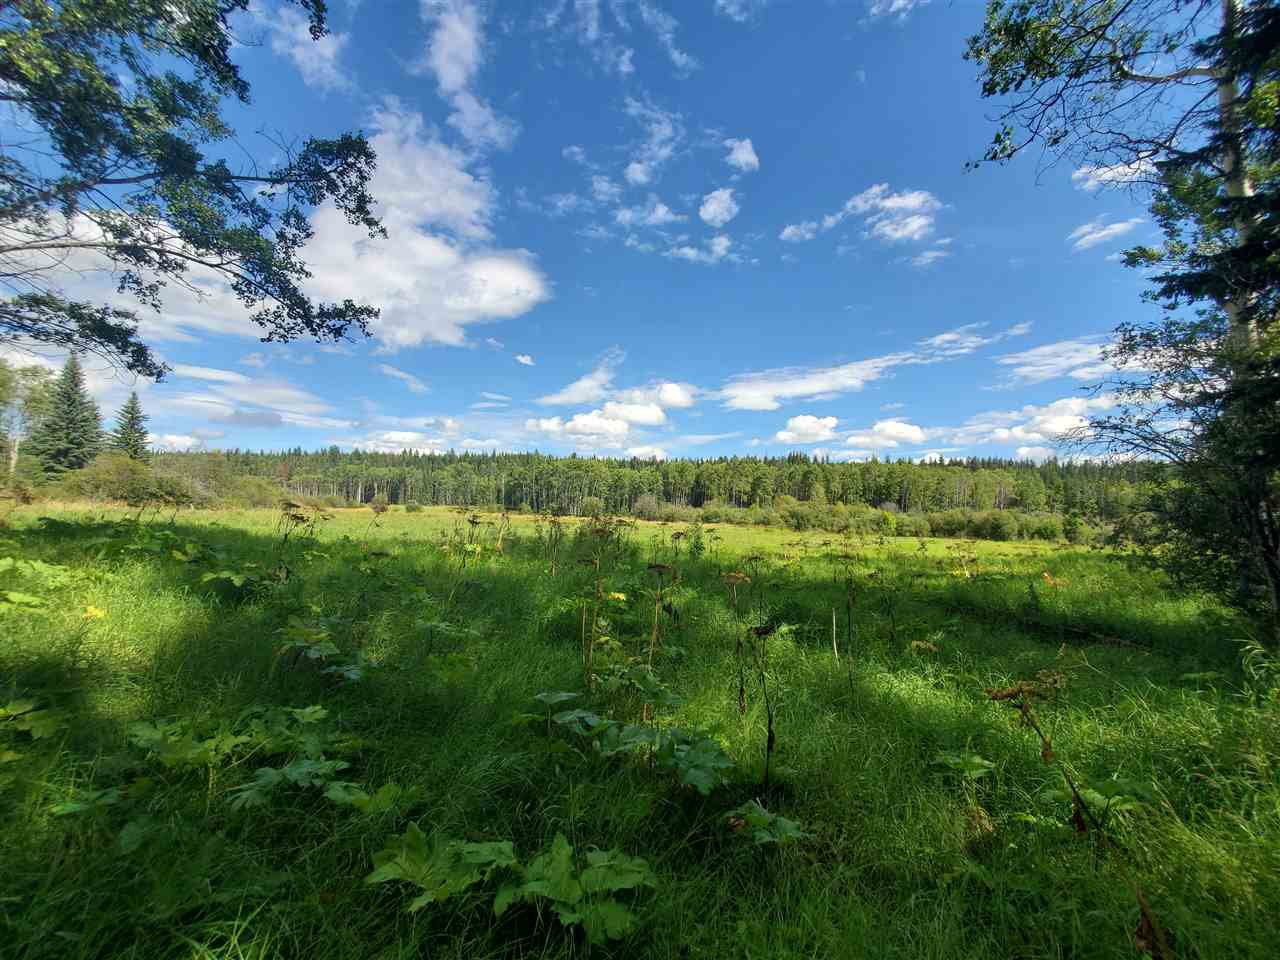 Main Photo: DL 2144 NAZKO Road in Quesnel: Bouchie Lake Land for sale (Quesnel (Zone 28))  : MLS®# R2486314